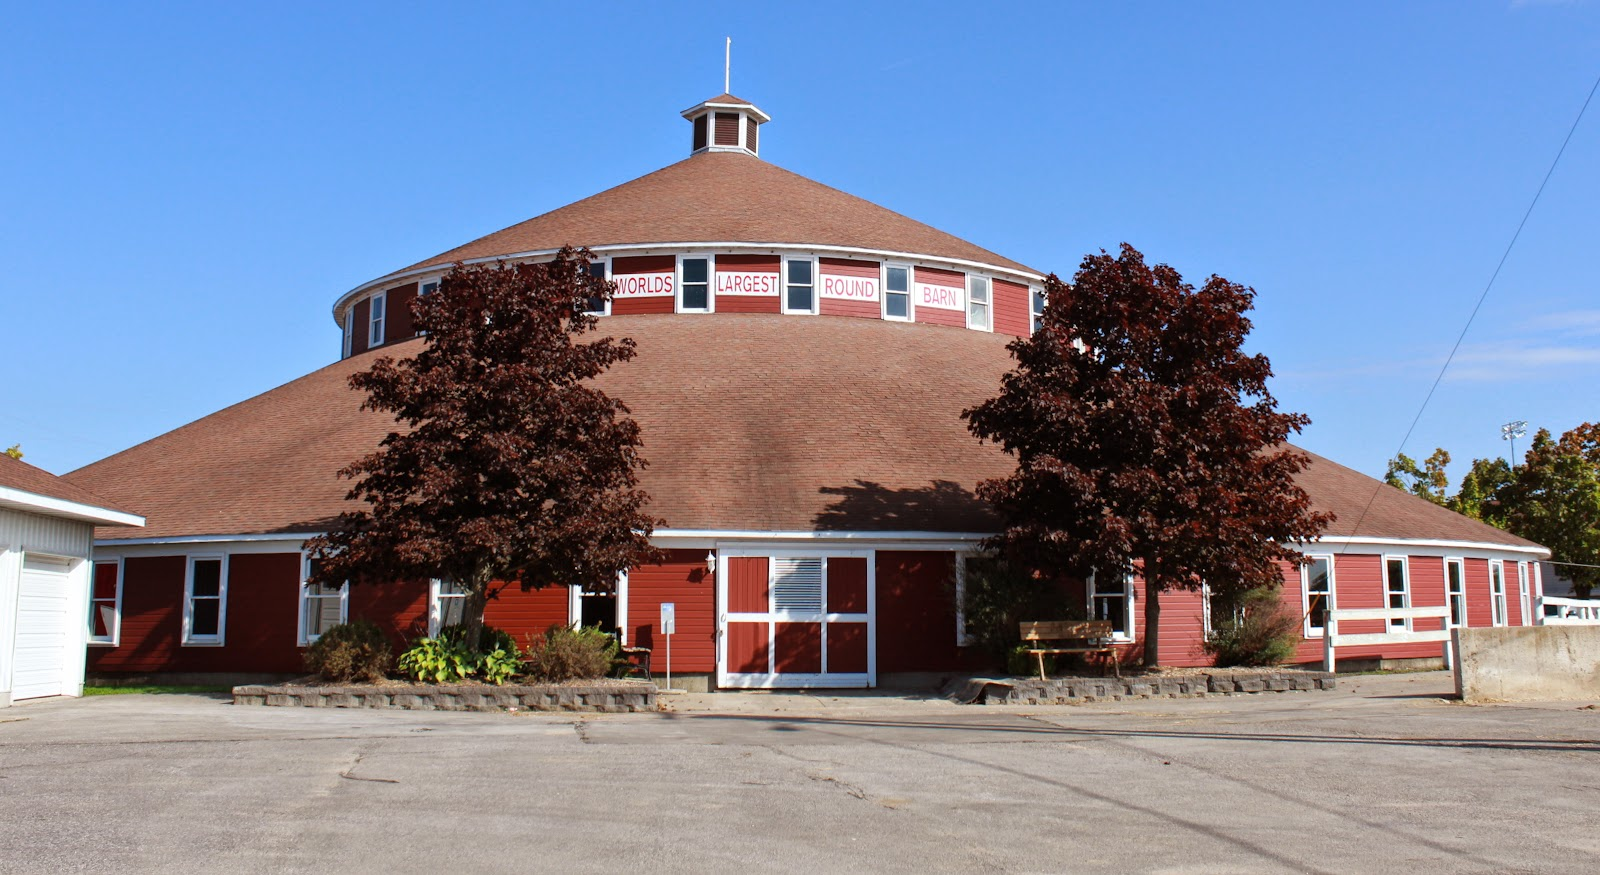 Wisconsin Historical Markers Worlds Sic Largest Round Barn